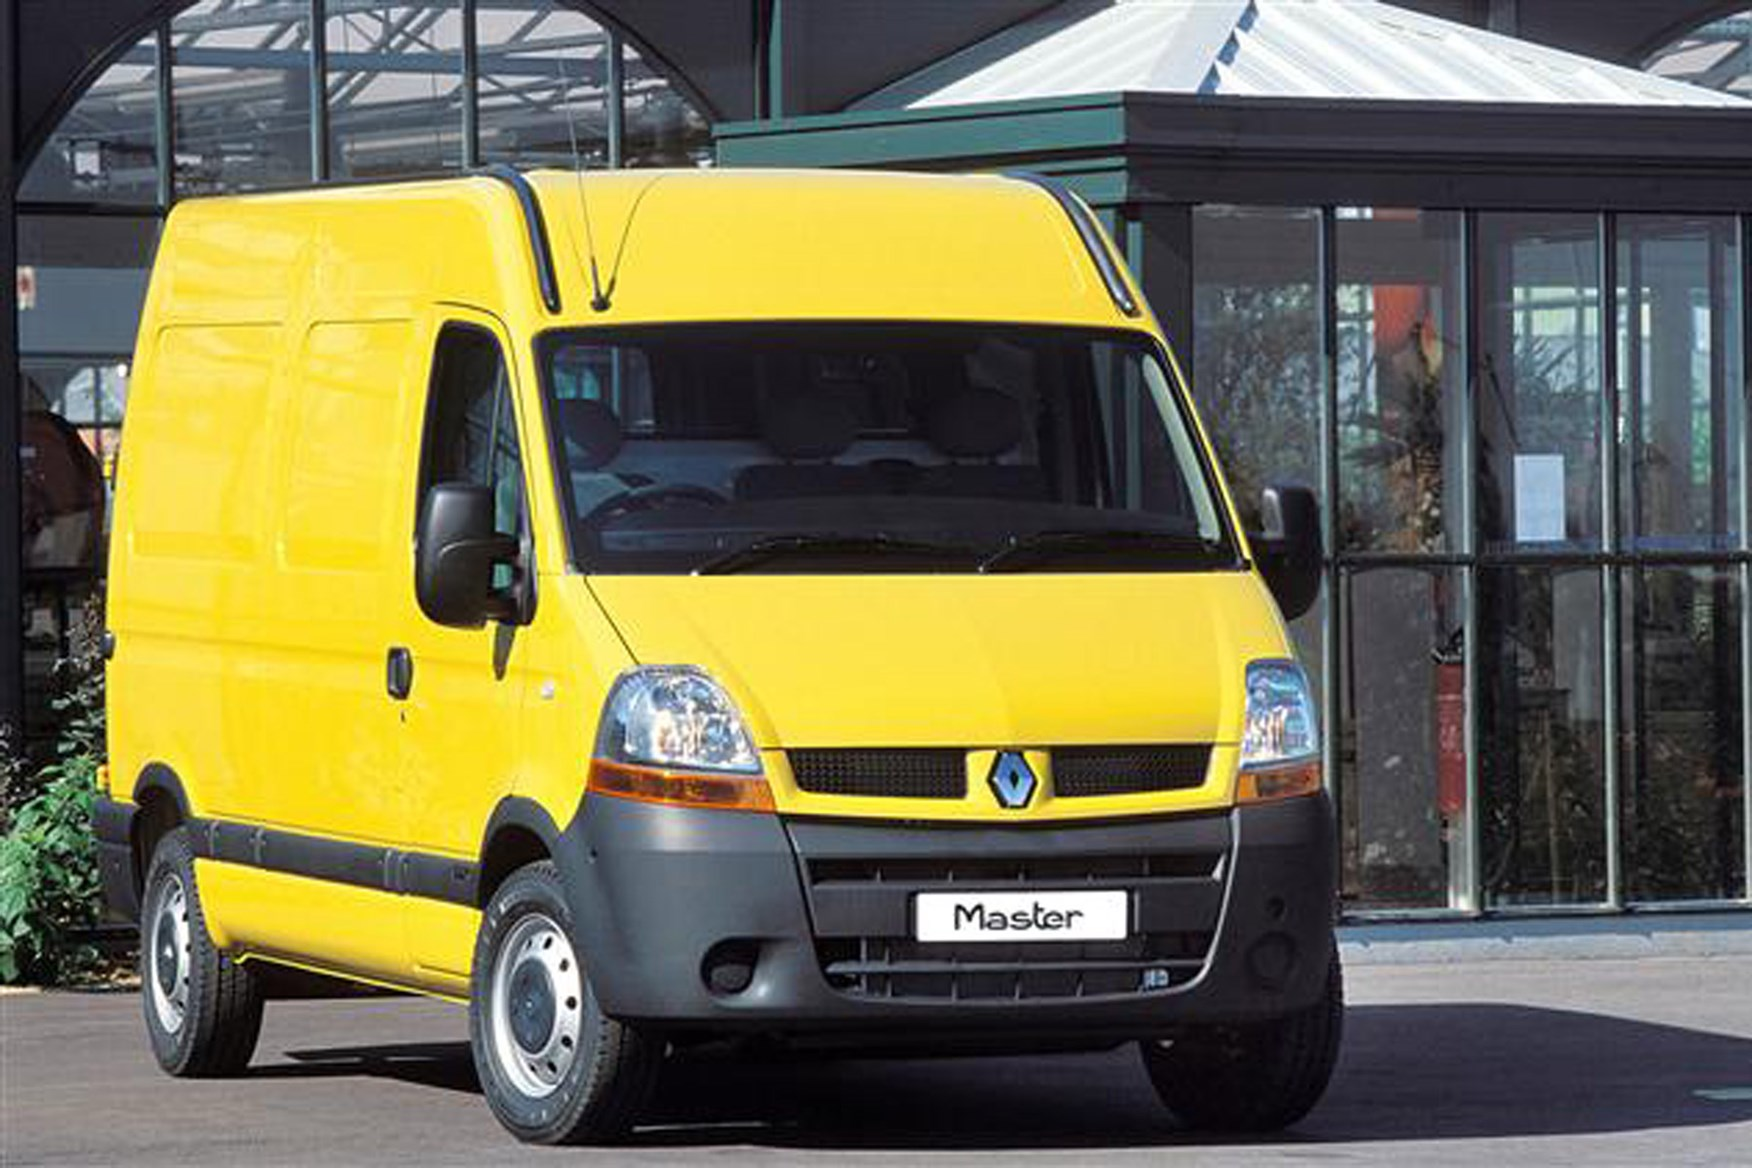 Renault Master review on Parkers Vans - front exterior